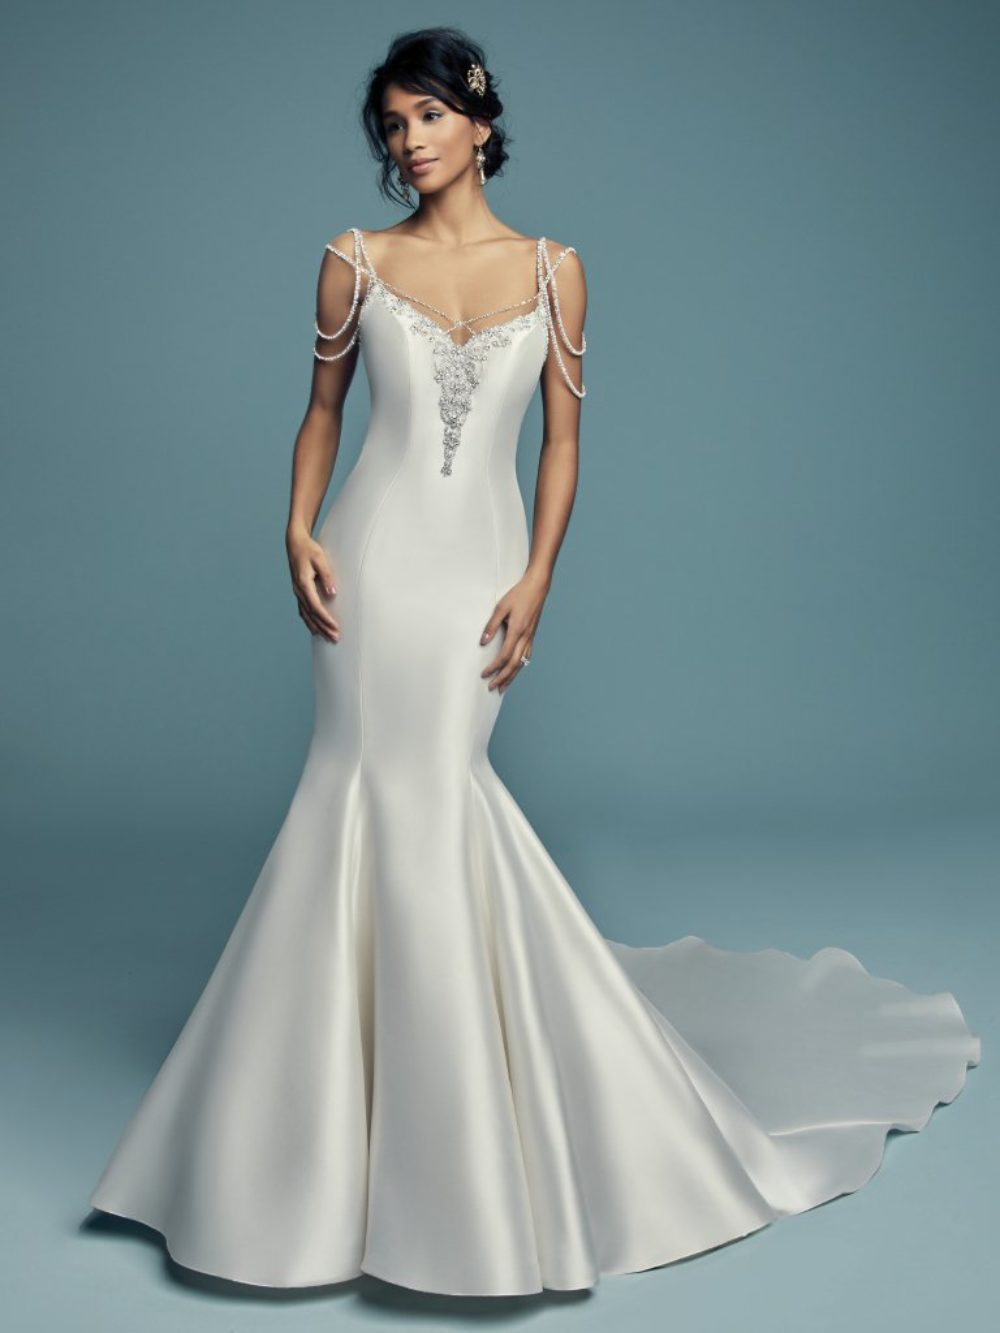 Satin ⋆ Precious Memories Bridal Shop